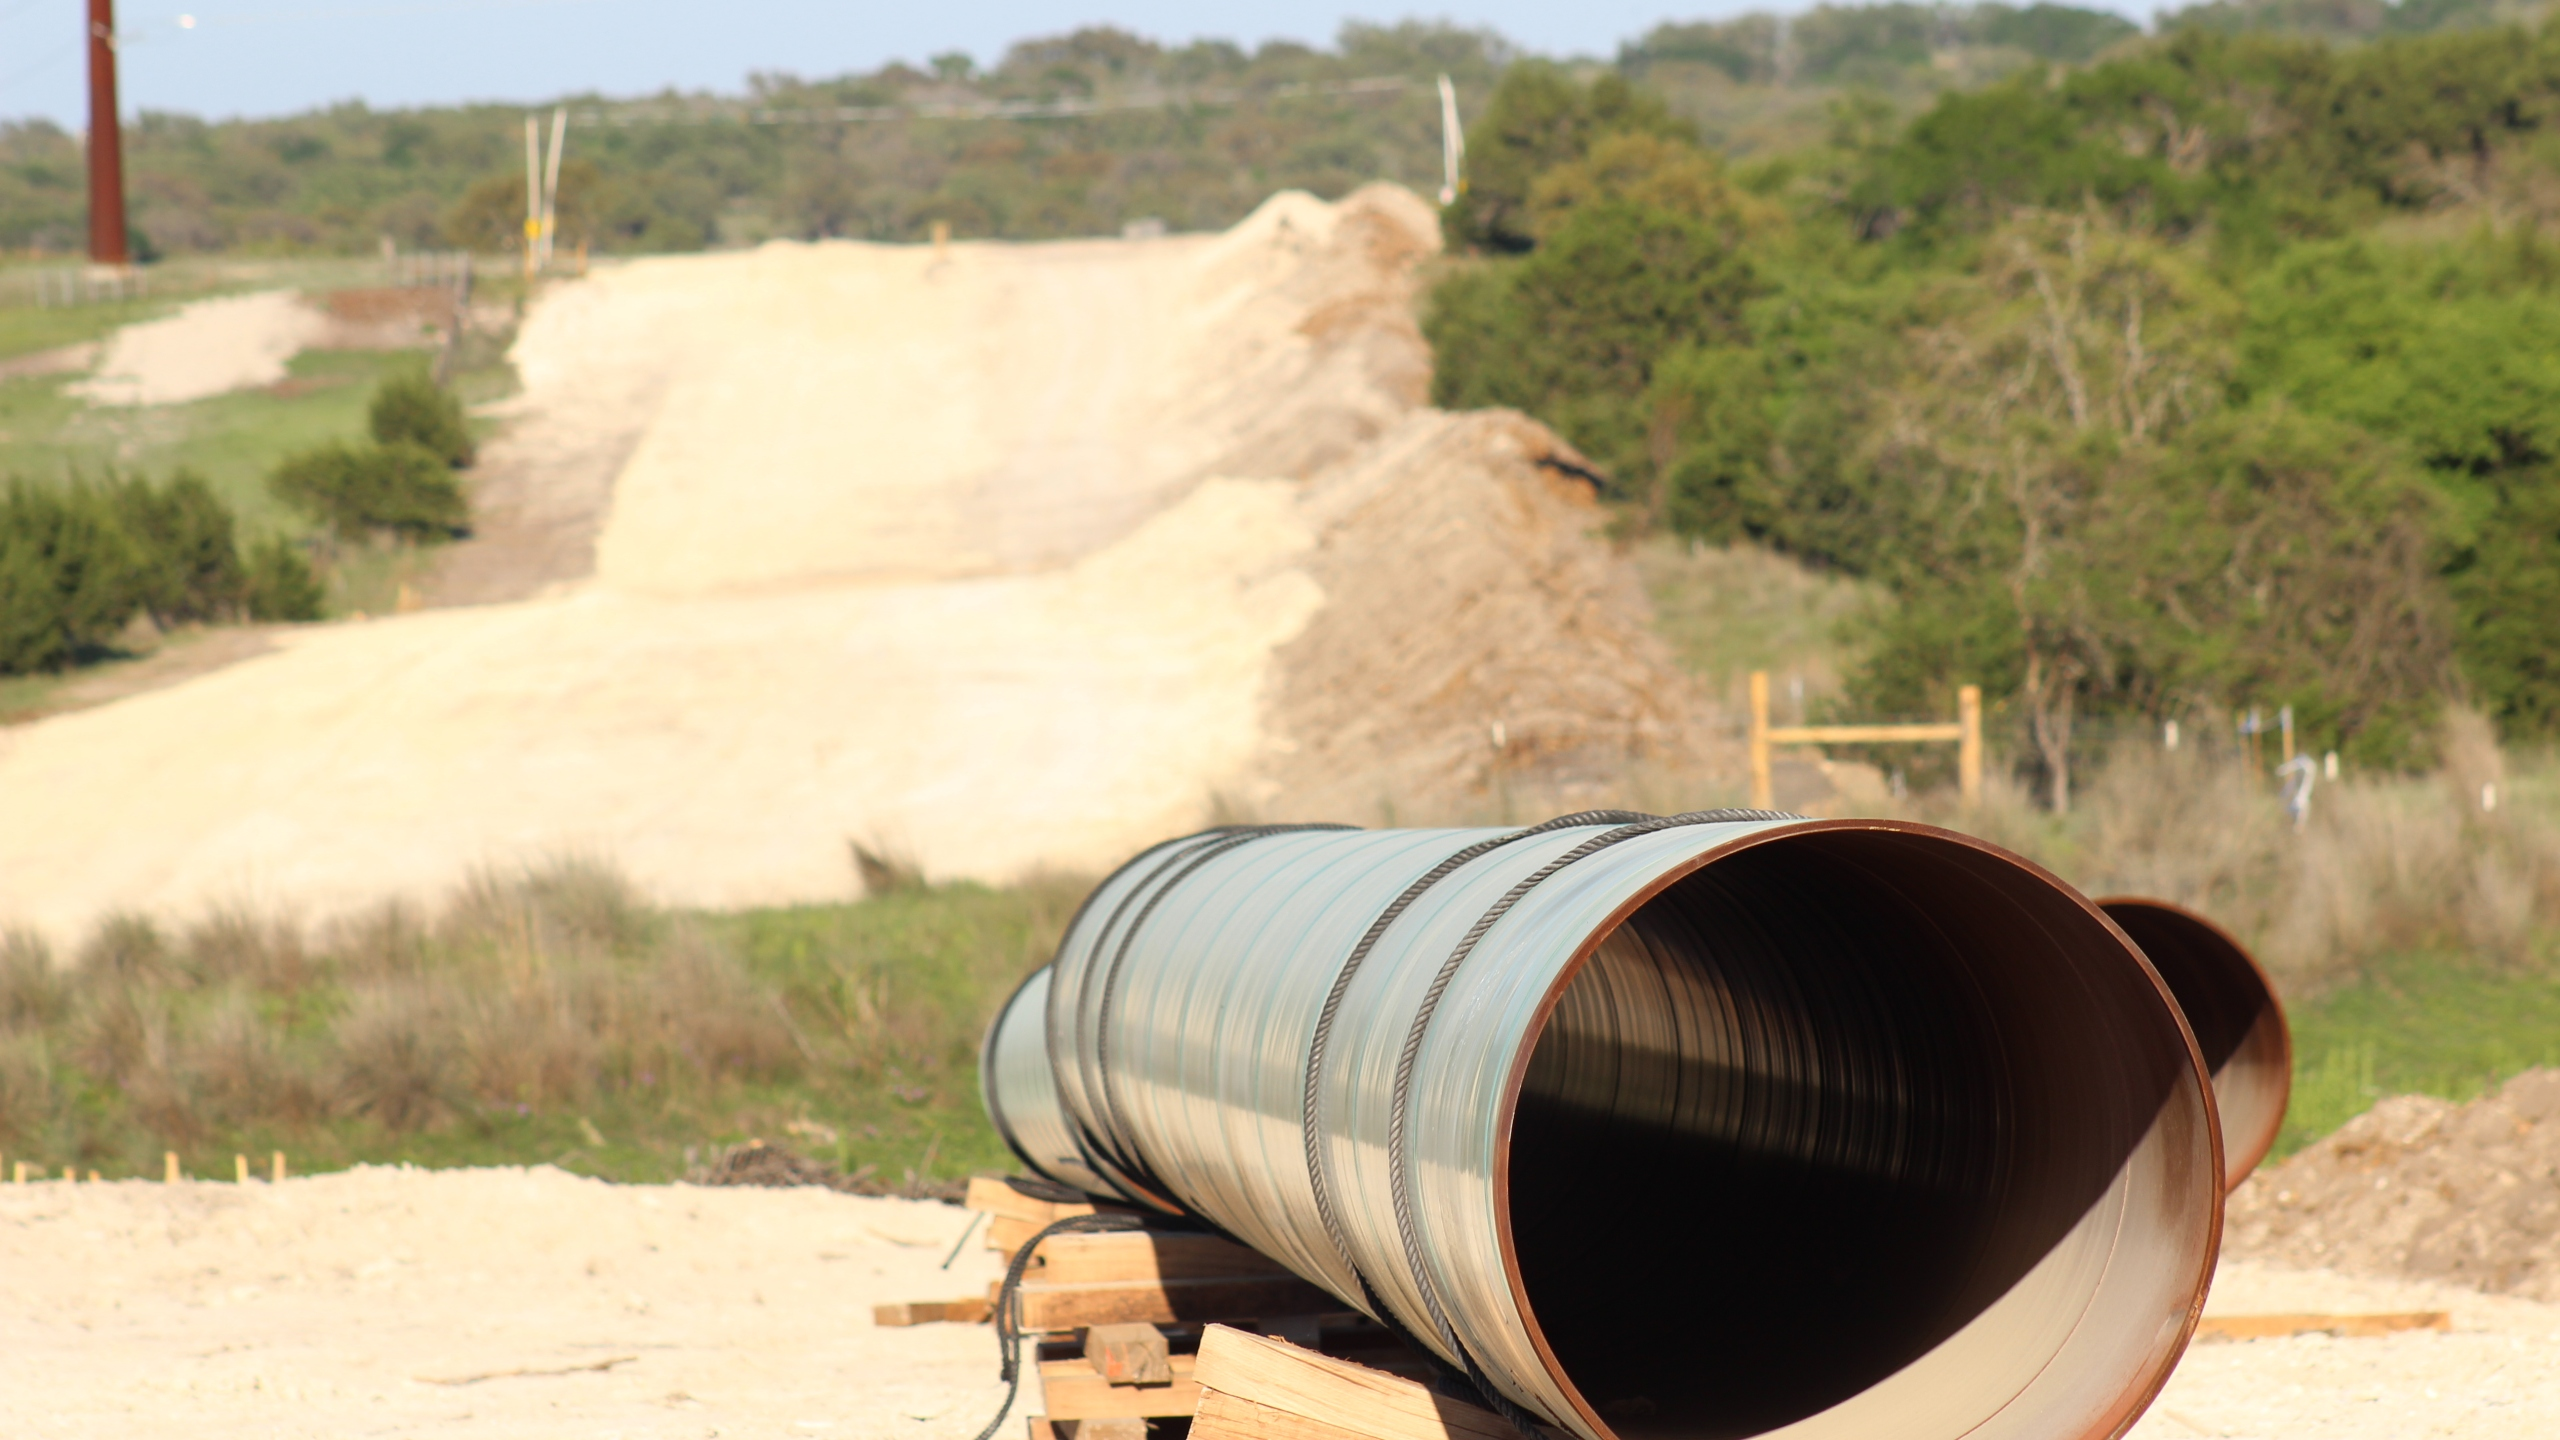 On April 15, 2020, pipe segments sat along this stretch of what will become the trench for Kinder Morgan's Permian Highway Pipeline in Gillespie County. (KXAN Photo/Jody Barr)